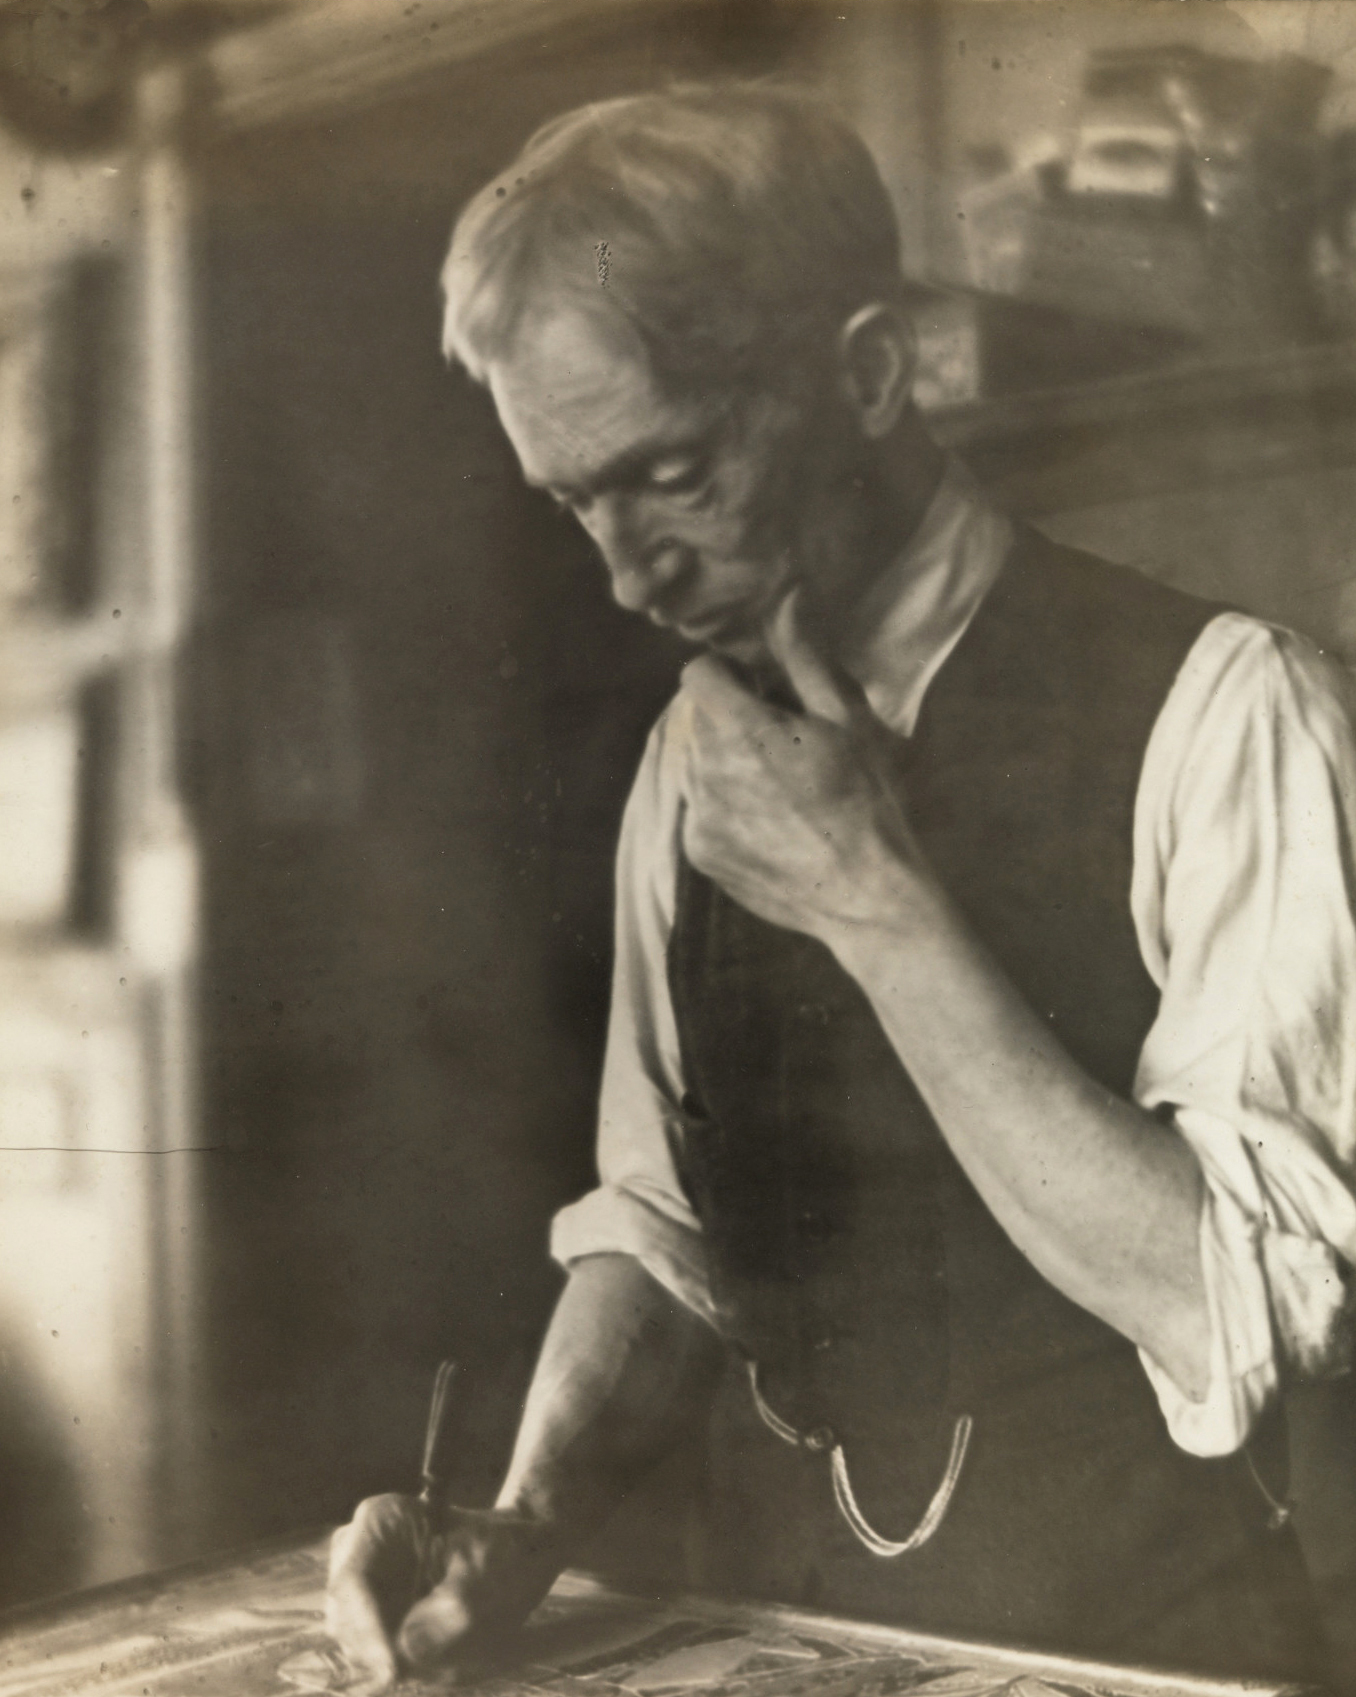 Anonymous, Charles Prendergast in studio, ca. 1919. Black and white photograph, 10 x 8 in. illiams College Museum of Art, Prendergast Archive and Study Center, Gift of Mrs. Charles Prendergast. (A.1.89)